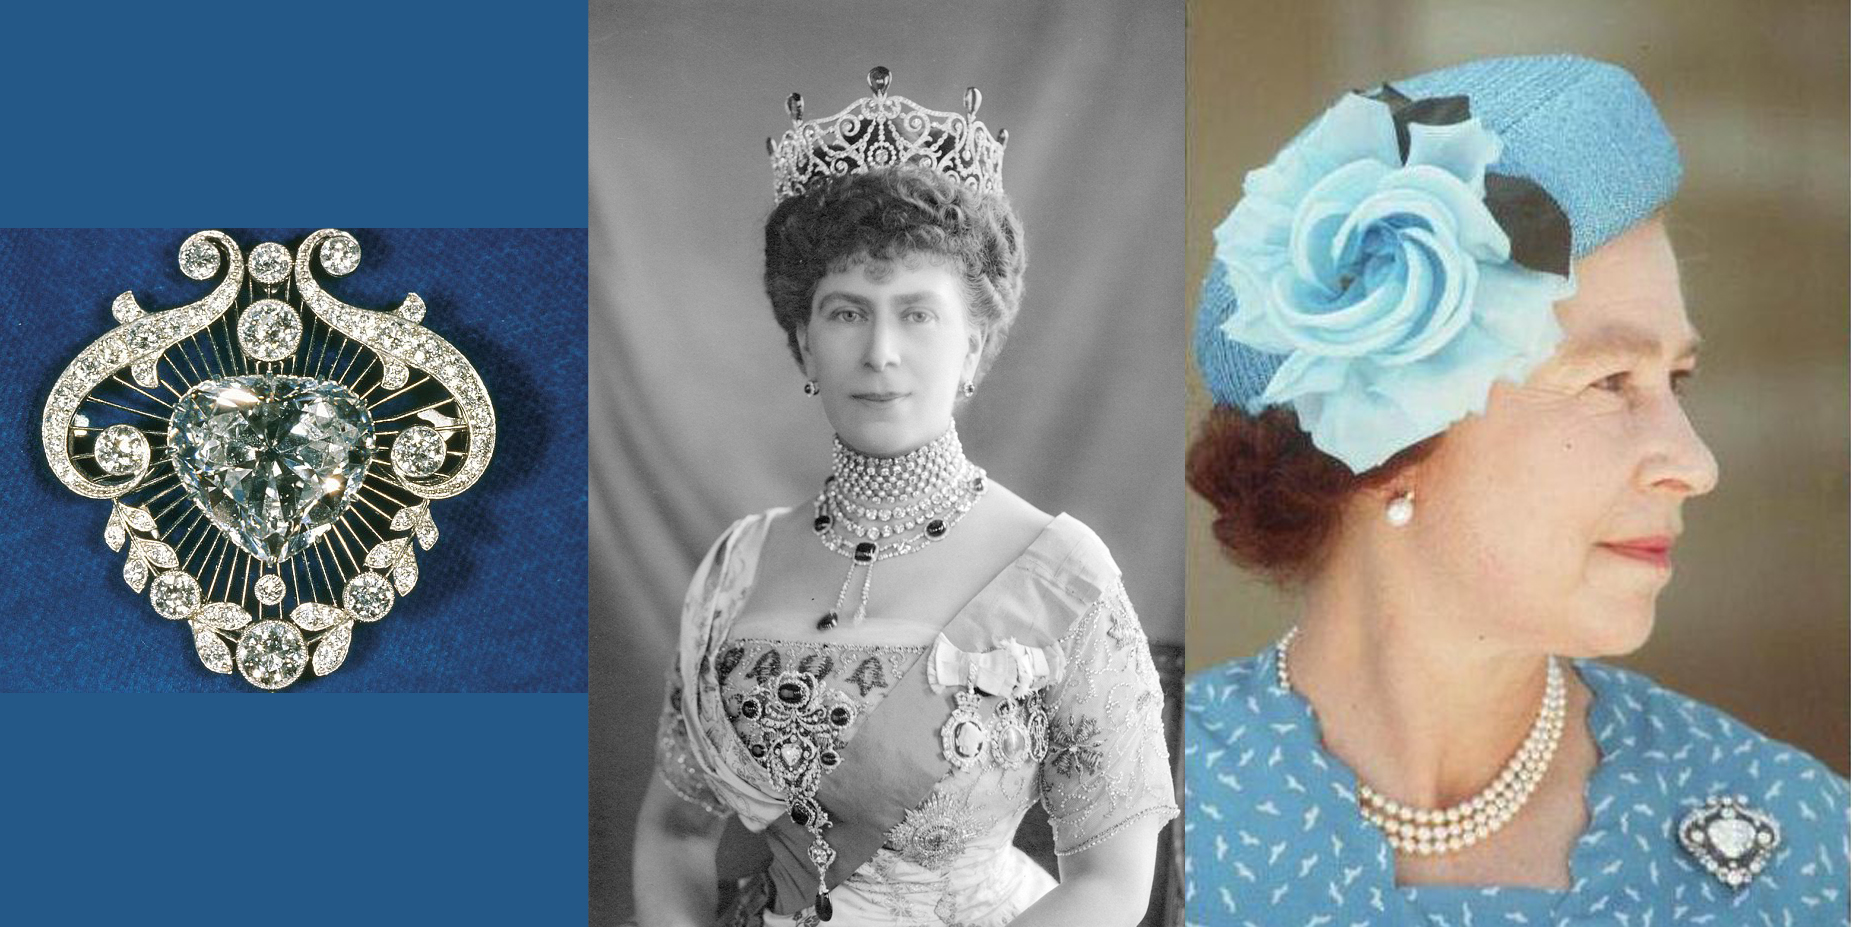 Left to Right: Cullinan V in the brooch setting, Queen Mary in the Dehli Dubar Parurue, Queen Elizabeth II wearing the Cullinan V brooch.